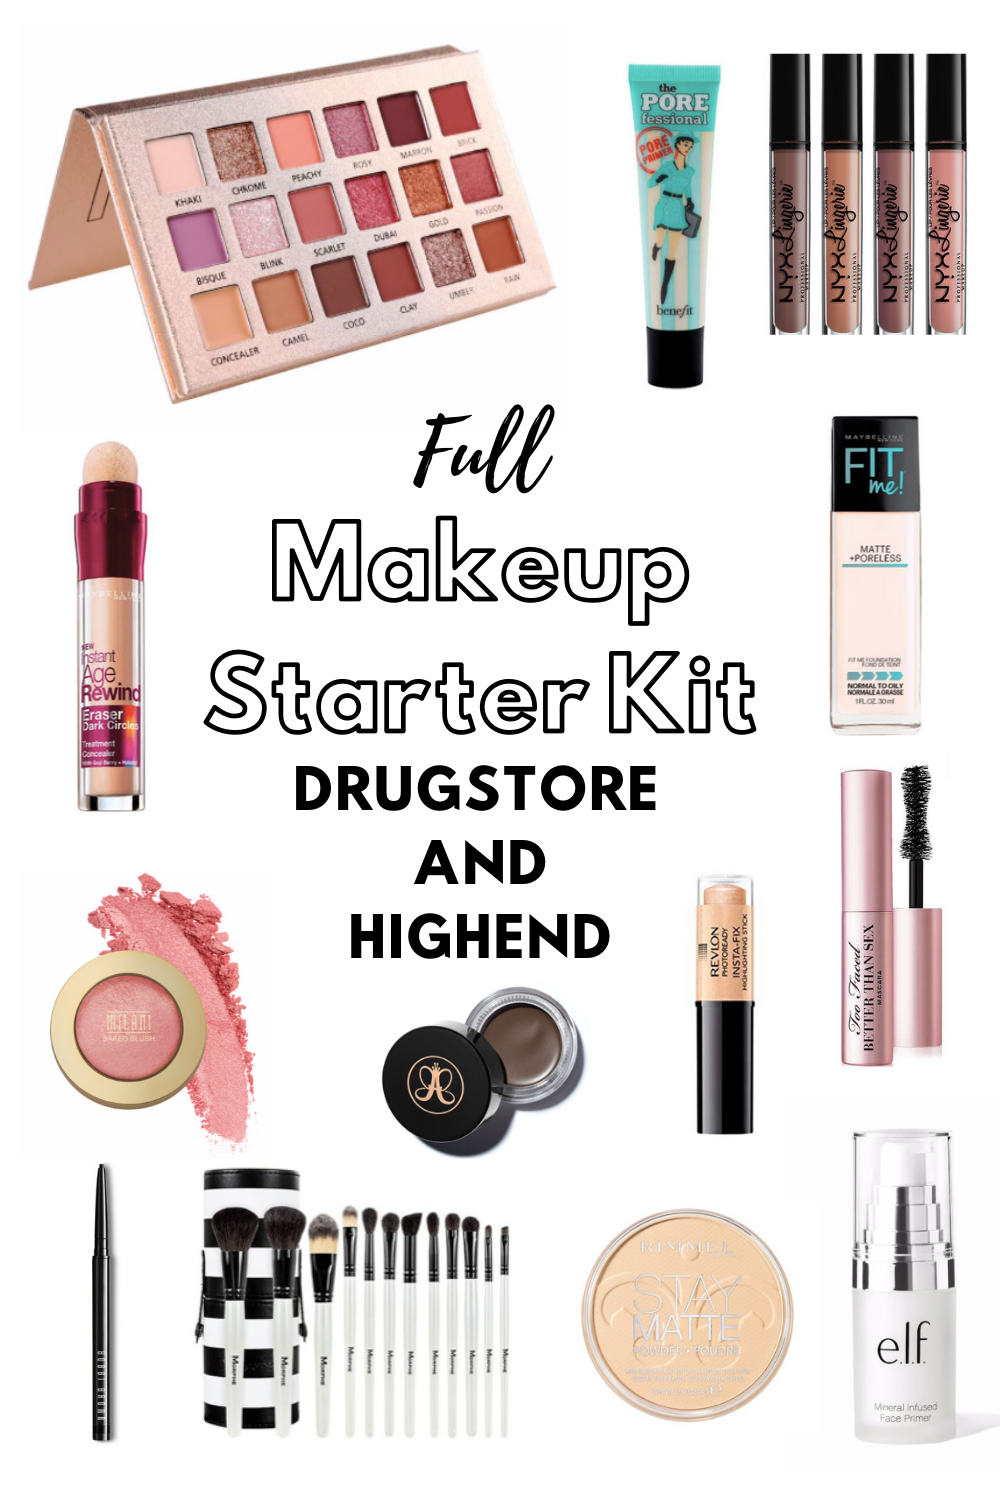 Drugstore Vs High End Makeup Starter Kits For Beginners In 2020 Makeup Starter Kit Makeup Kit Drugstore Makeup